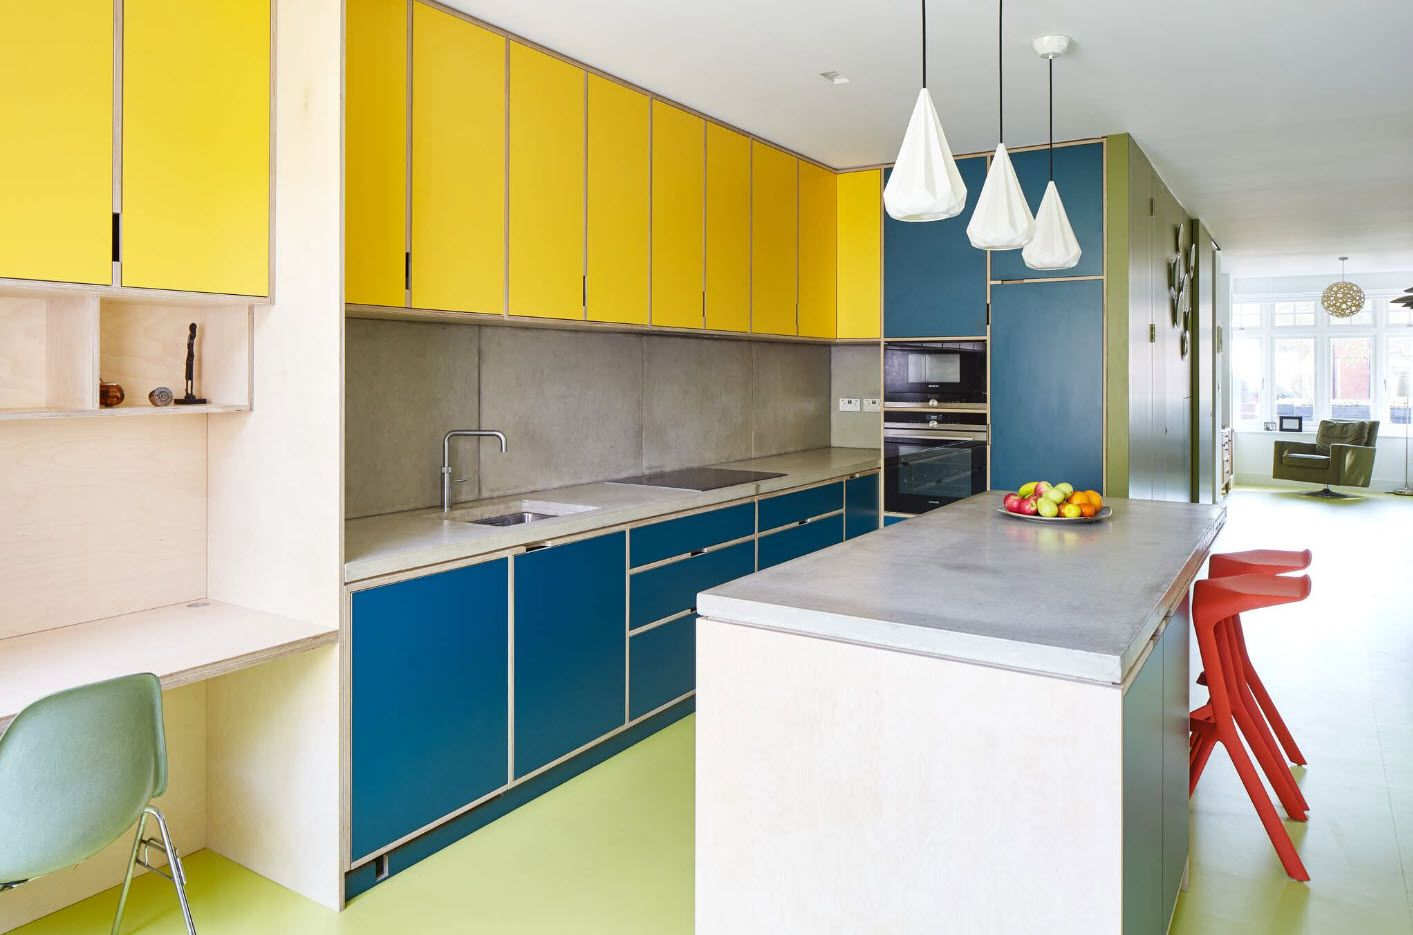 Yellow and blue nice color combination for the kitchen furniture set